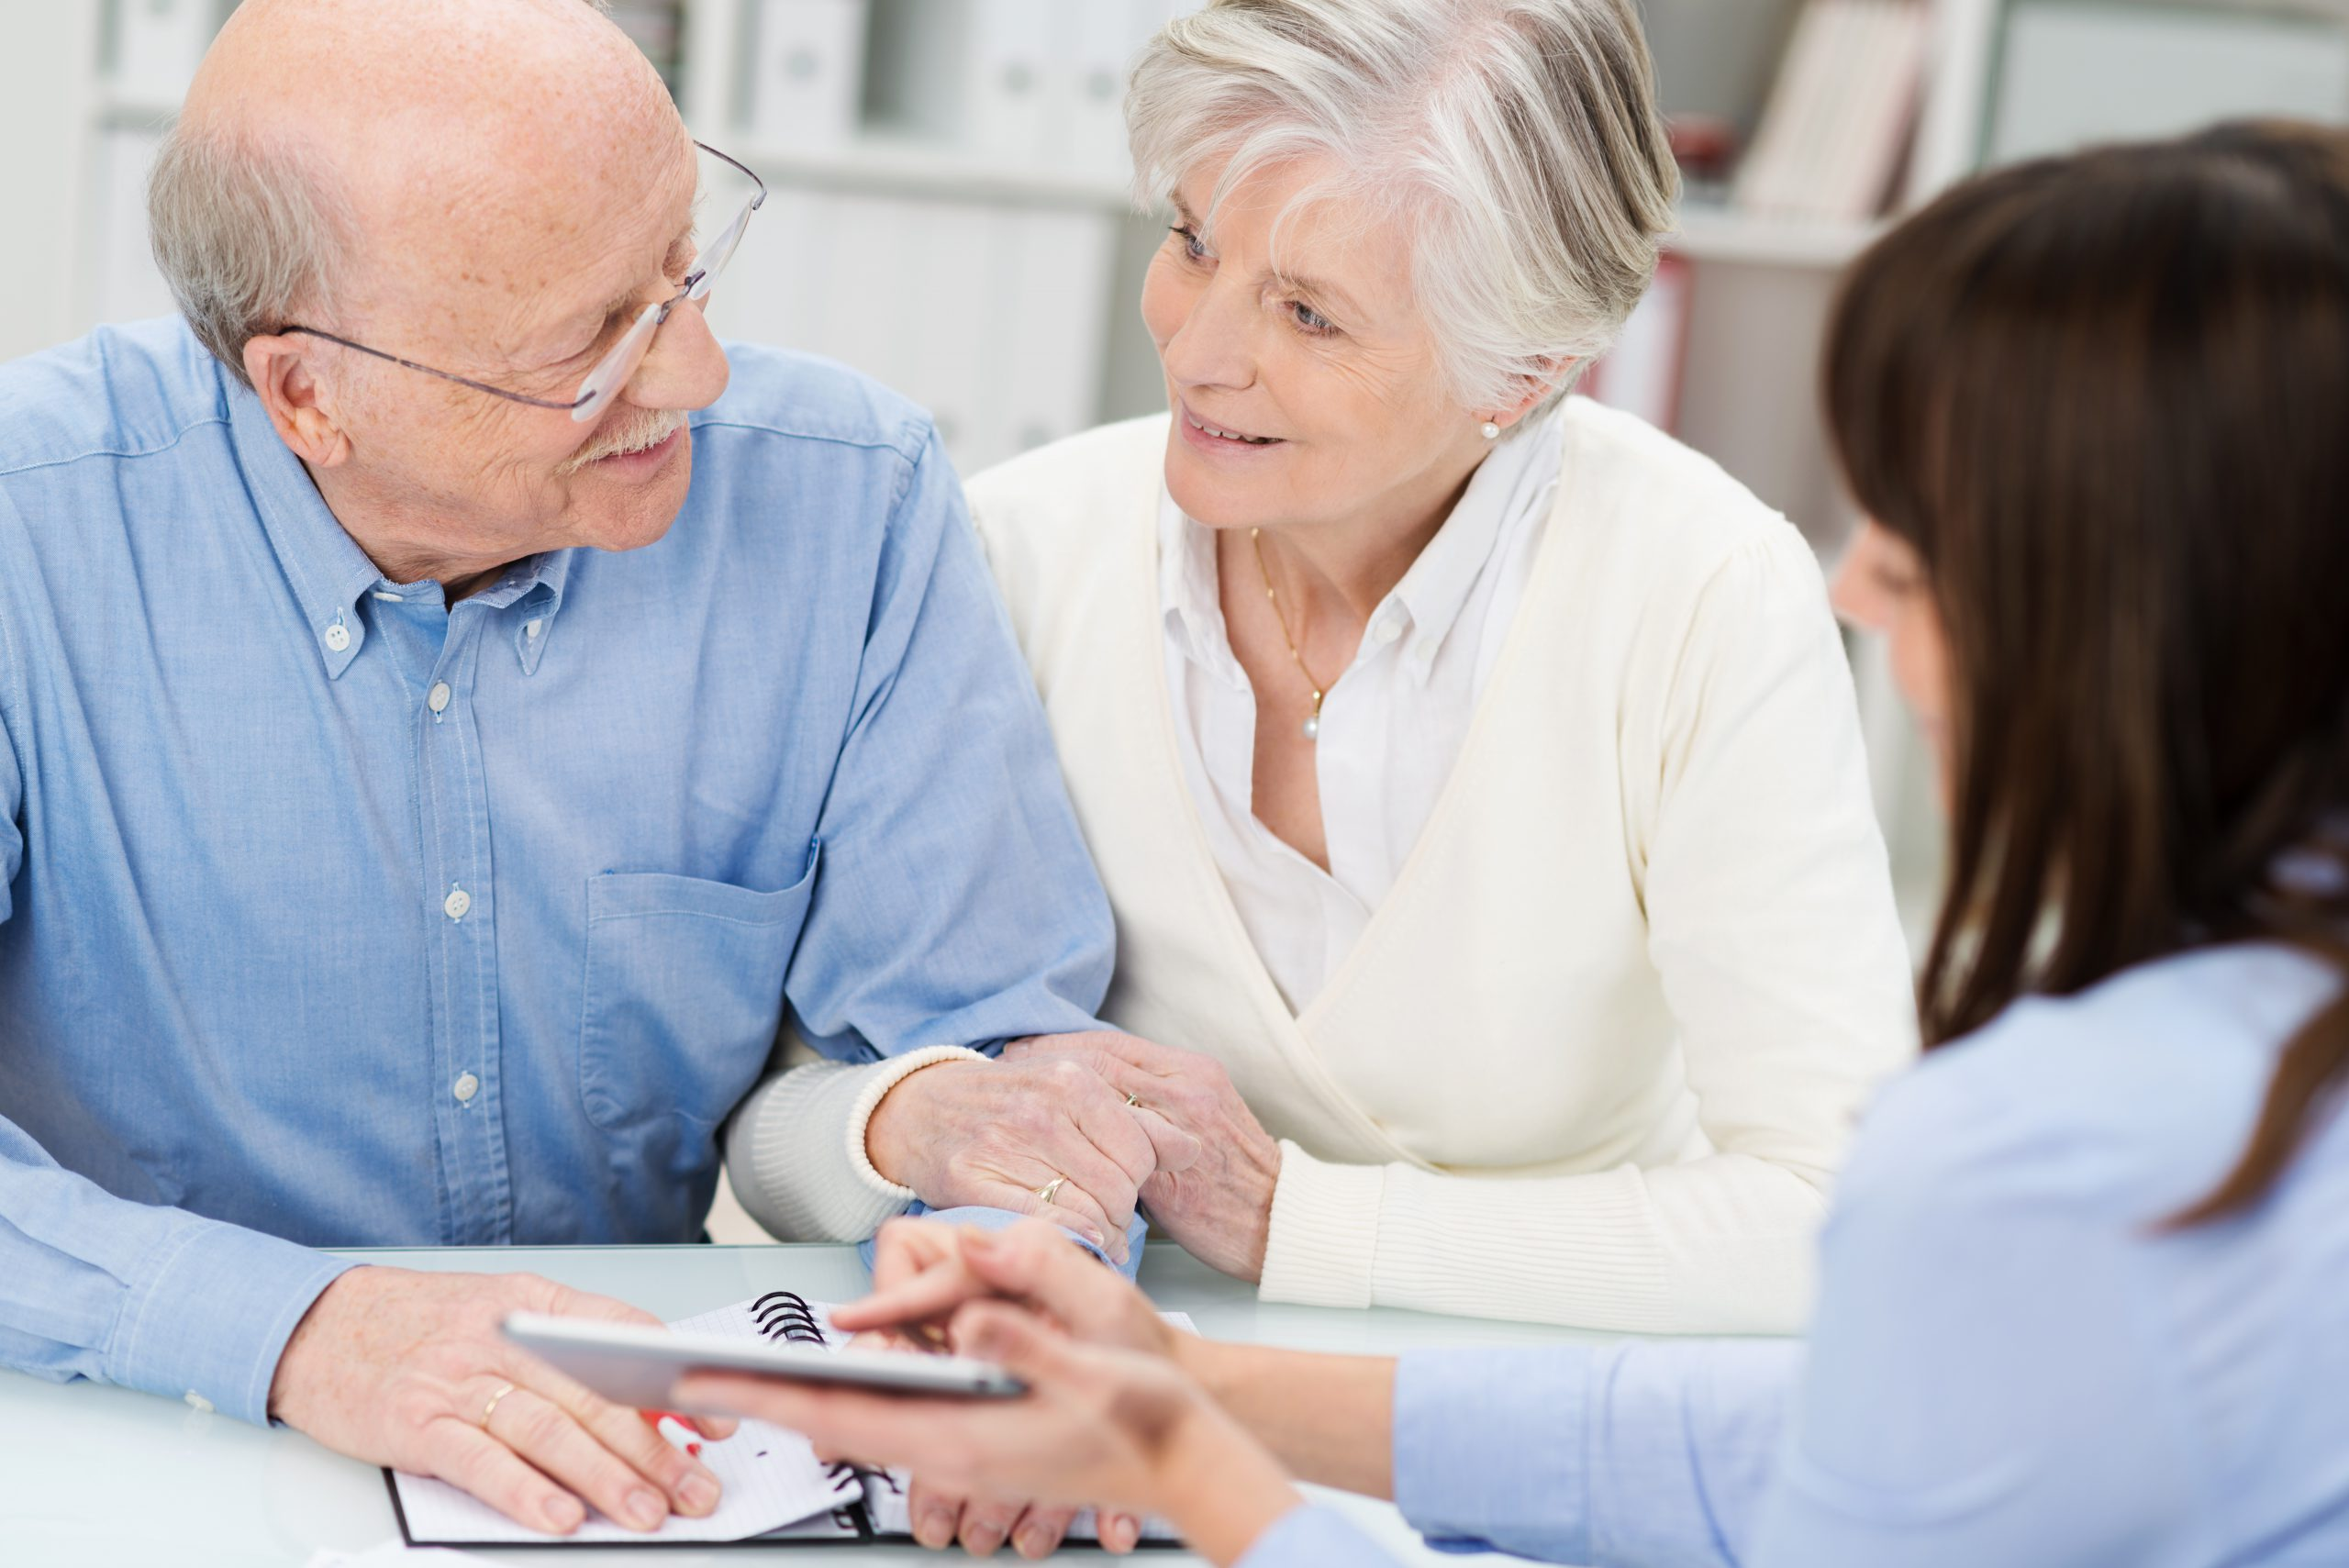 Affectionate elderly couple in a business meeting holding hands as they discuss a proposal put forward by their broker